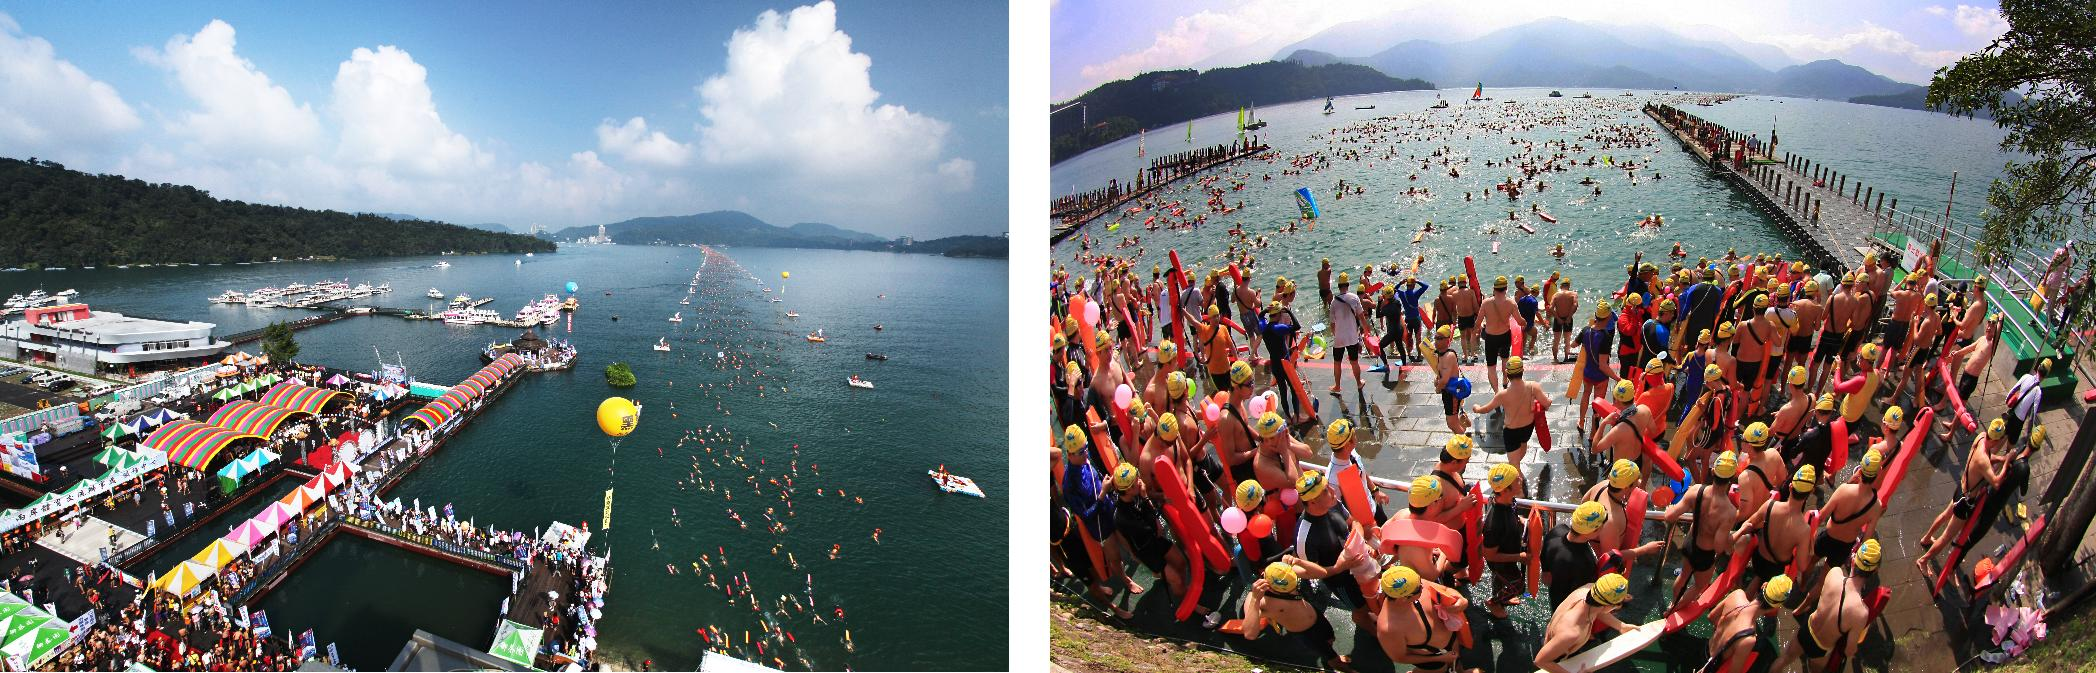 10,000 People Sun Moon Lake Traverse